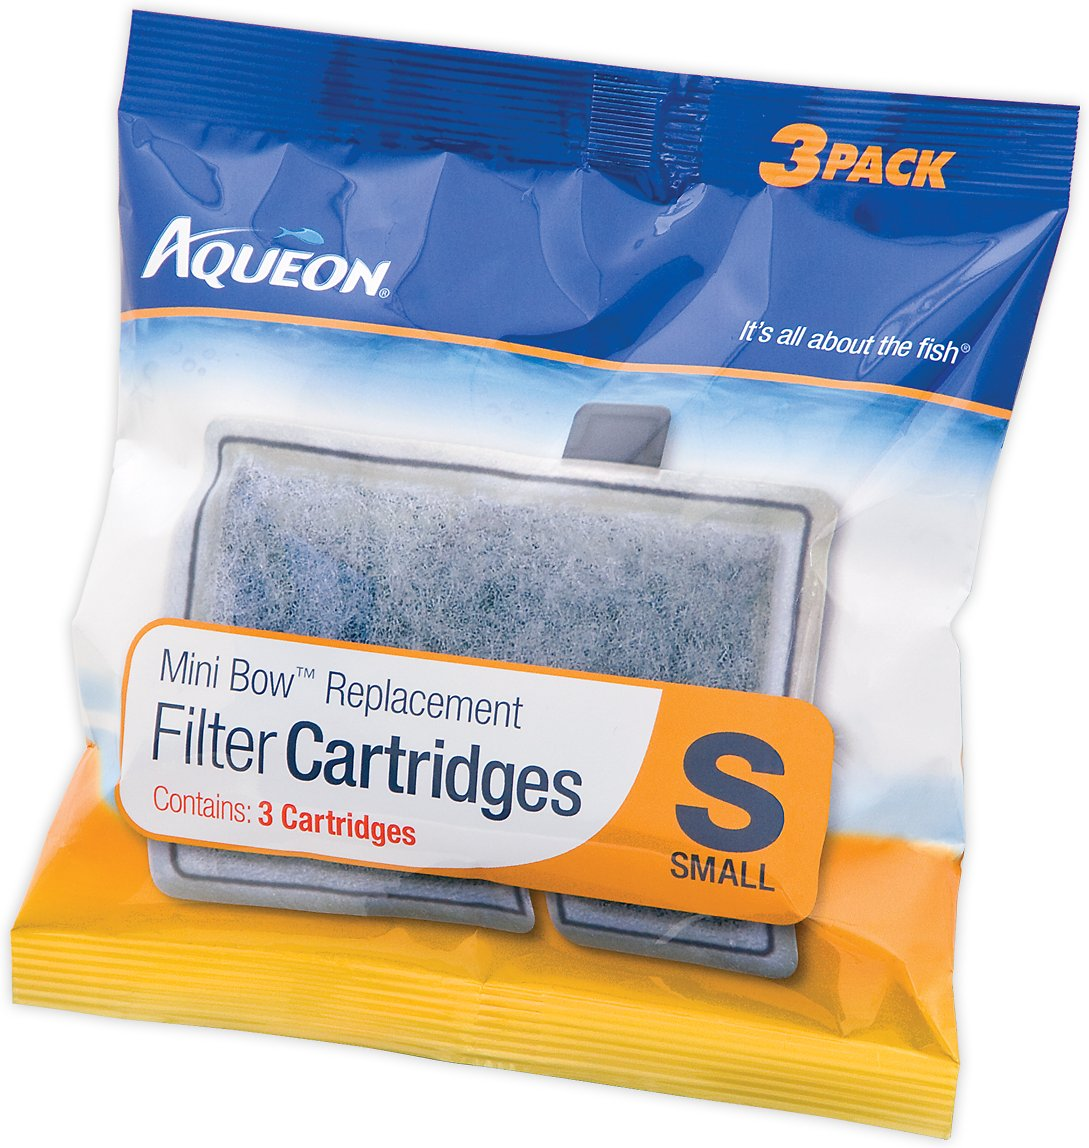 Aqueon Small Bow Filter Cartridge Replacement, 3-count